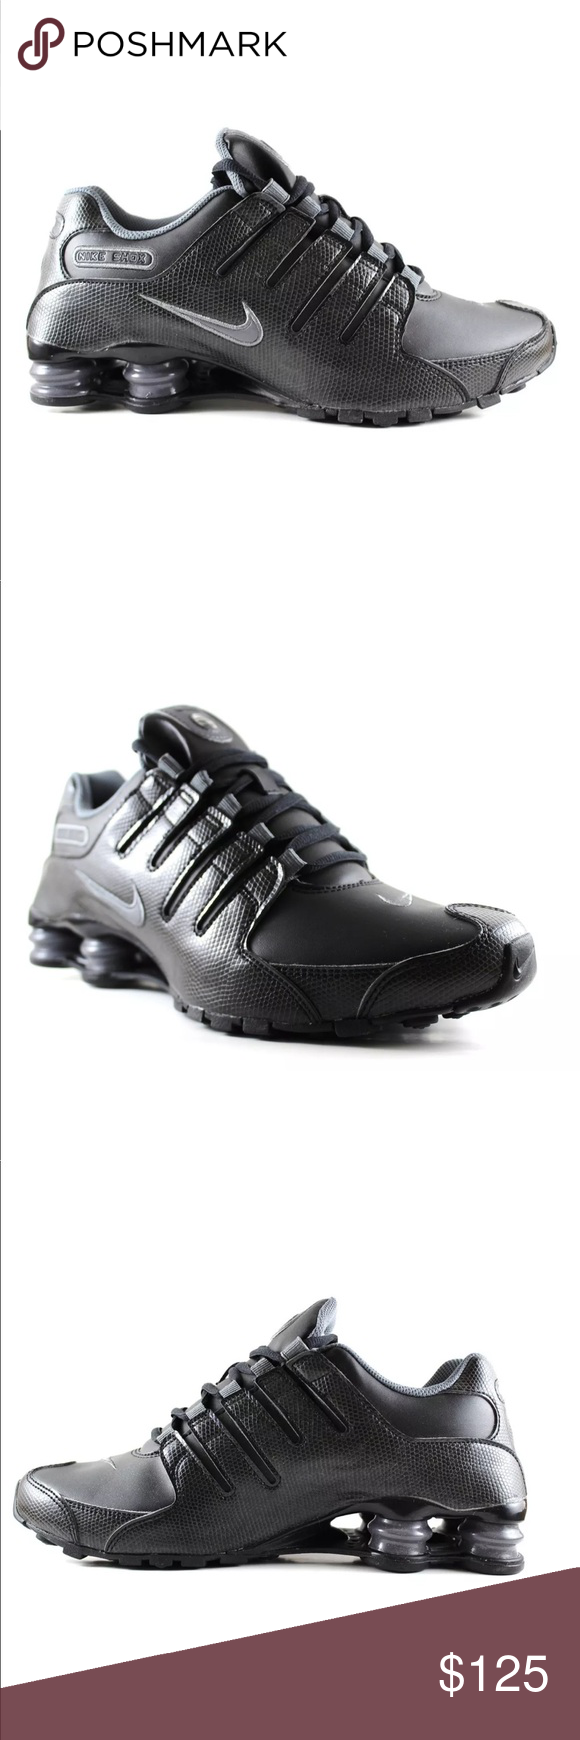 promo code 927dc 8d026 Nike Women s Shox NZ EU Running Shoes 488312 020 Featuring the looks you  want and the